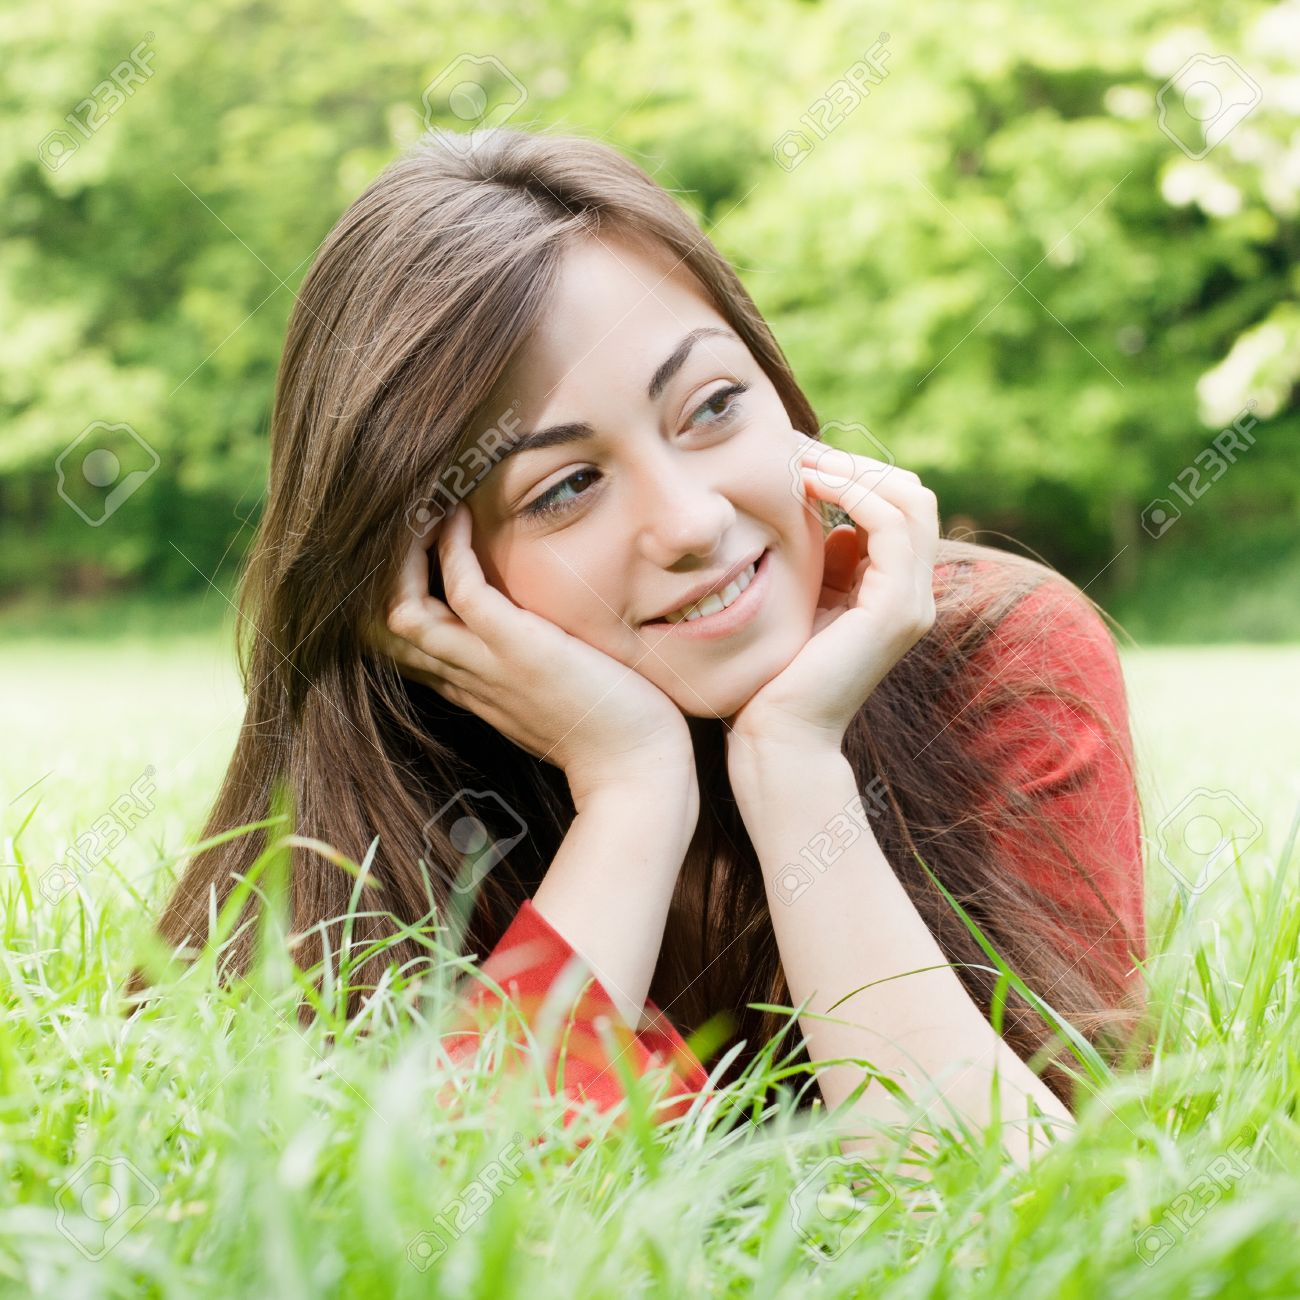 Portrait of happy girl relaxed outdoors. Stock Photo - 10000226